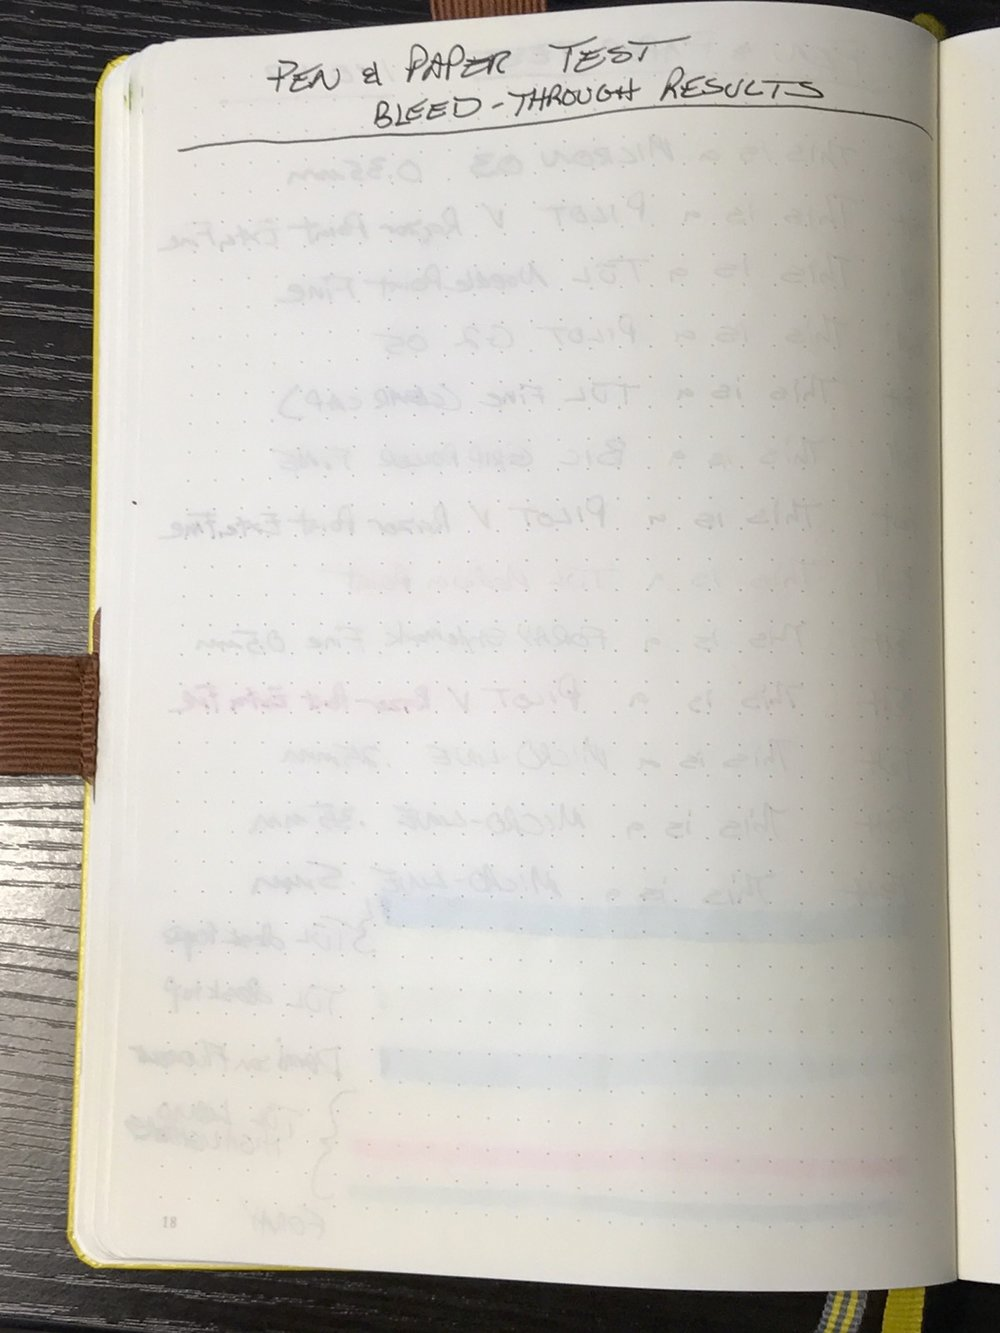 The Leuchtturm1917 revealed a considerable amount of ghosting.